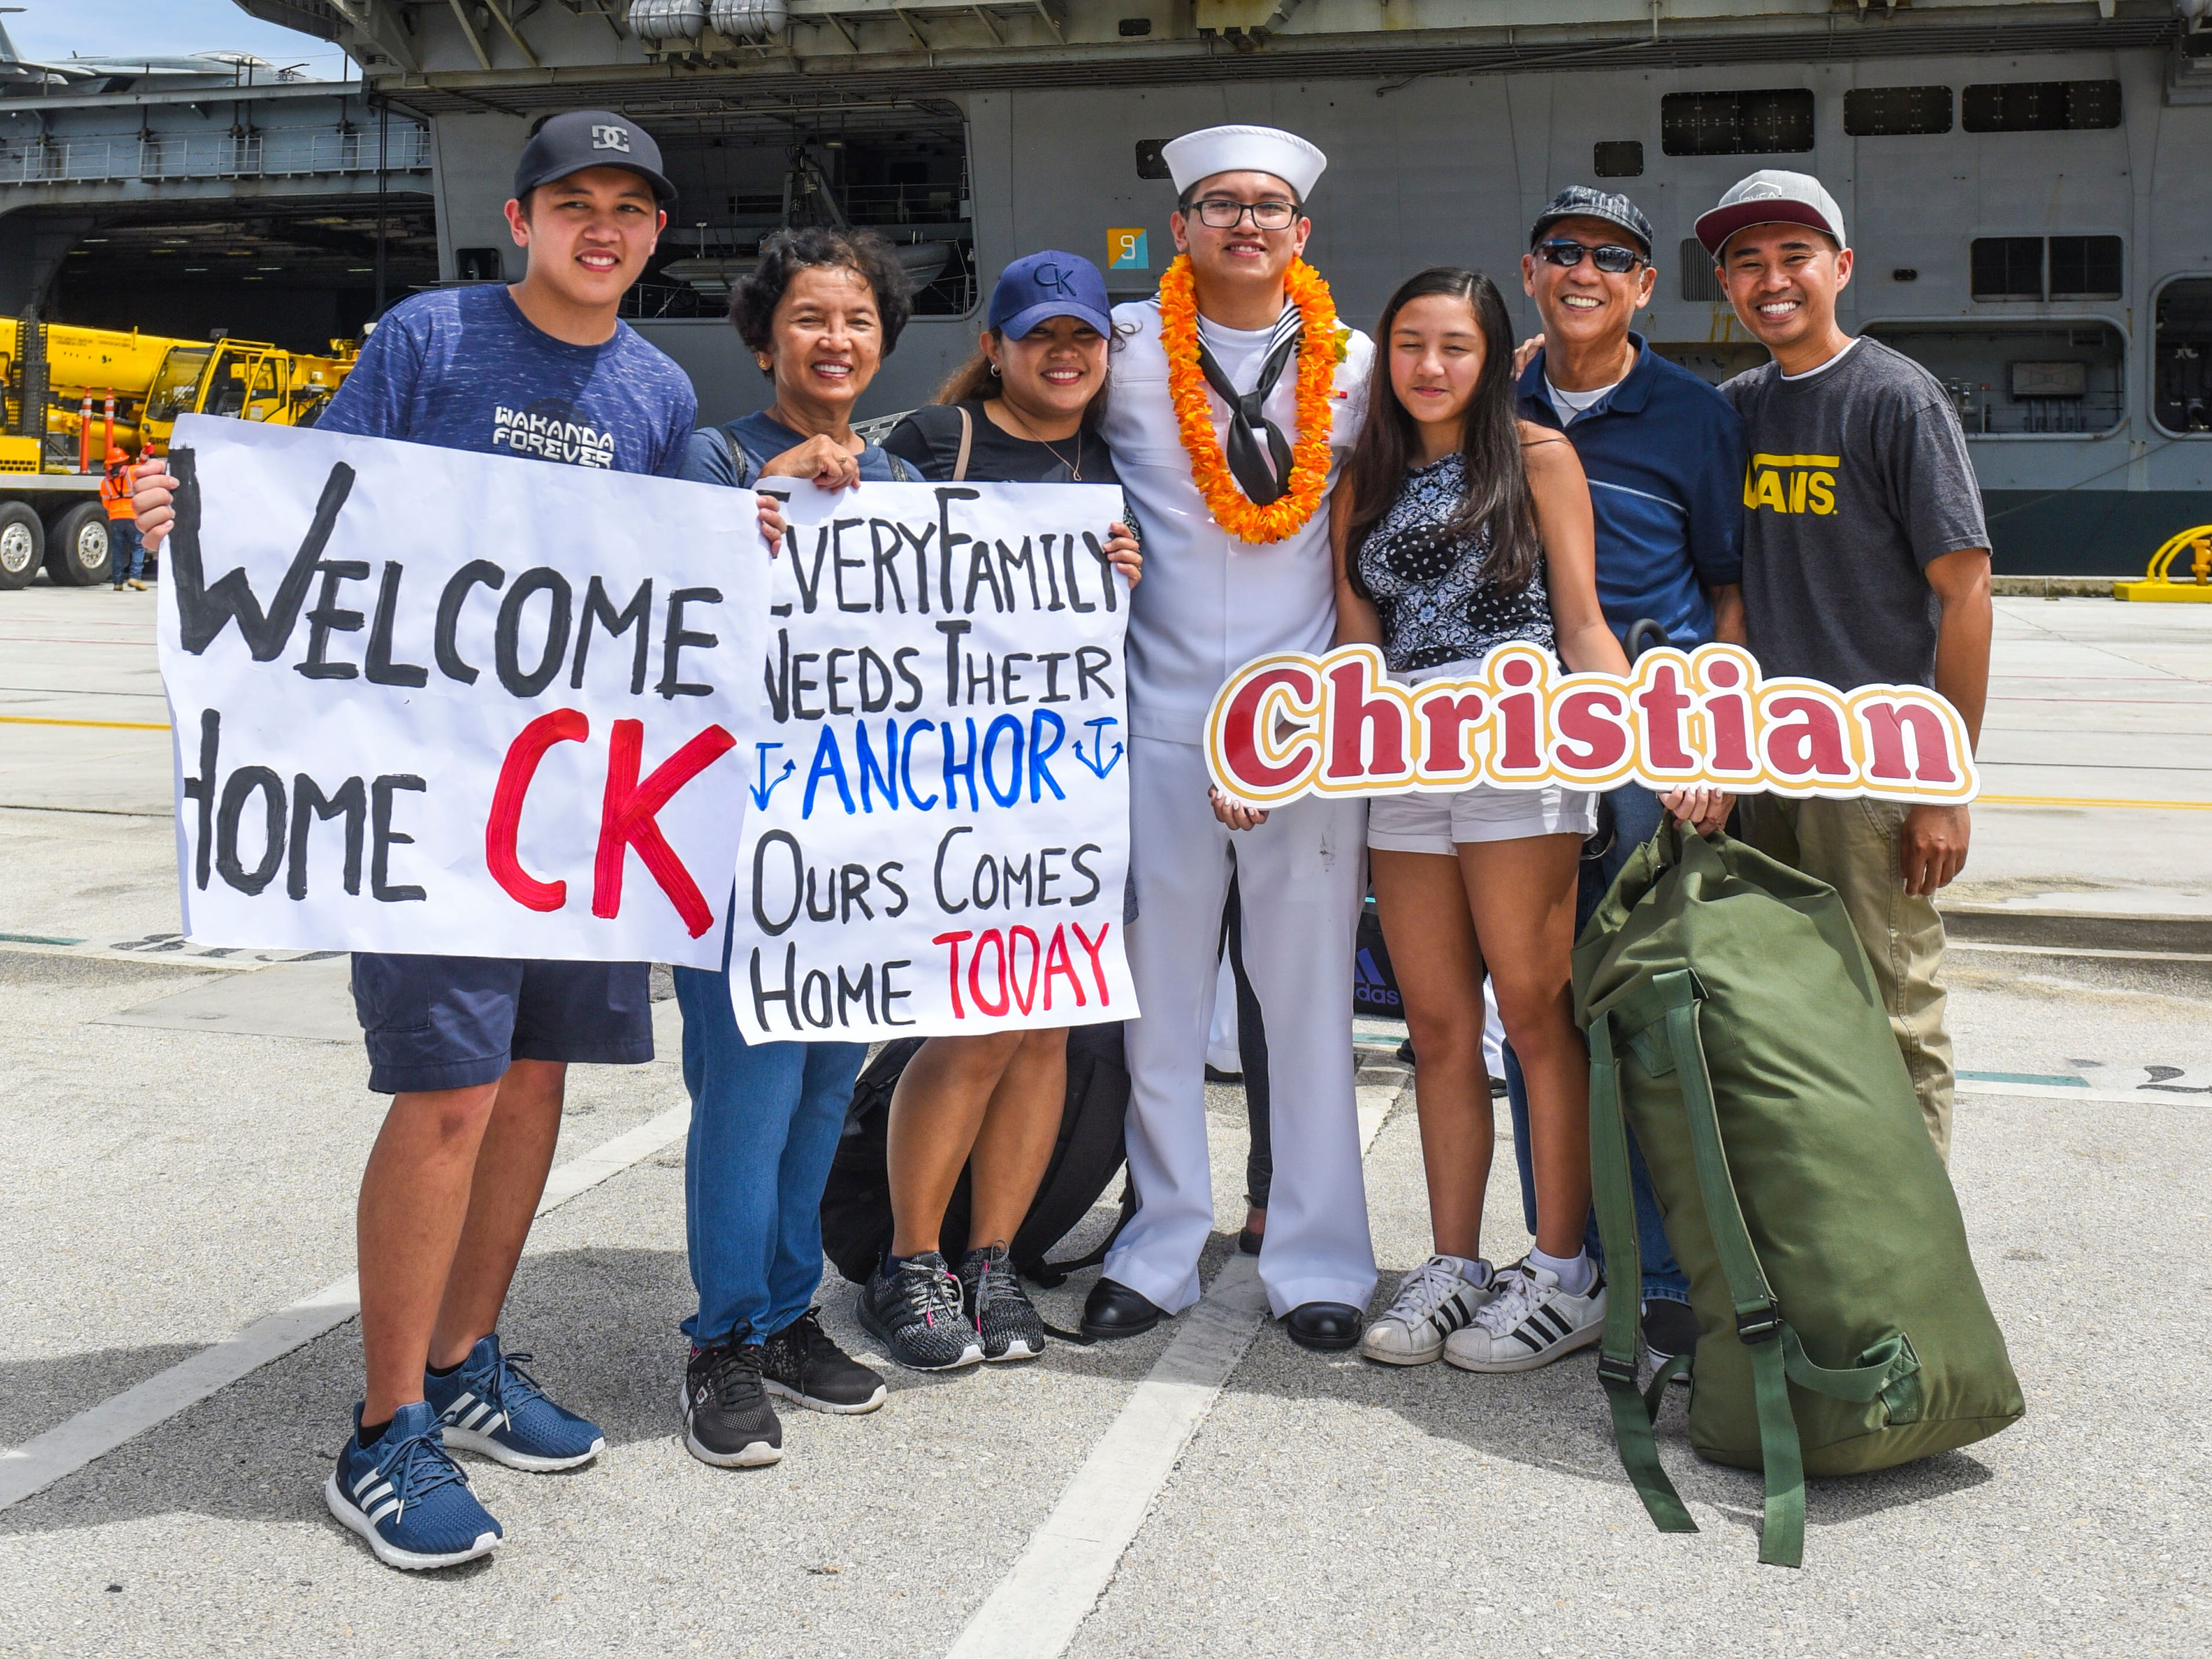 Navy Airman Christian Dela Cruz, center, is greeted by family members after his arrival aboard the Nimitz-class nuclear-powered aircraft carrier, USS Ronald Reagan, at the Kilo Wharf on Naval Base Guam in Sumay, on Monday, Sept. 24, 2018.